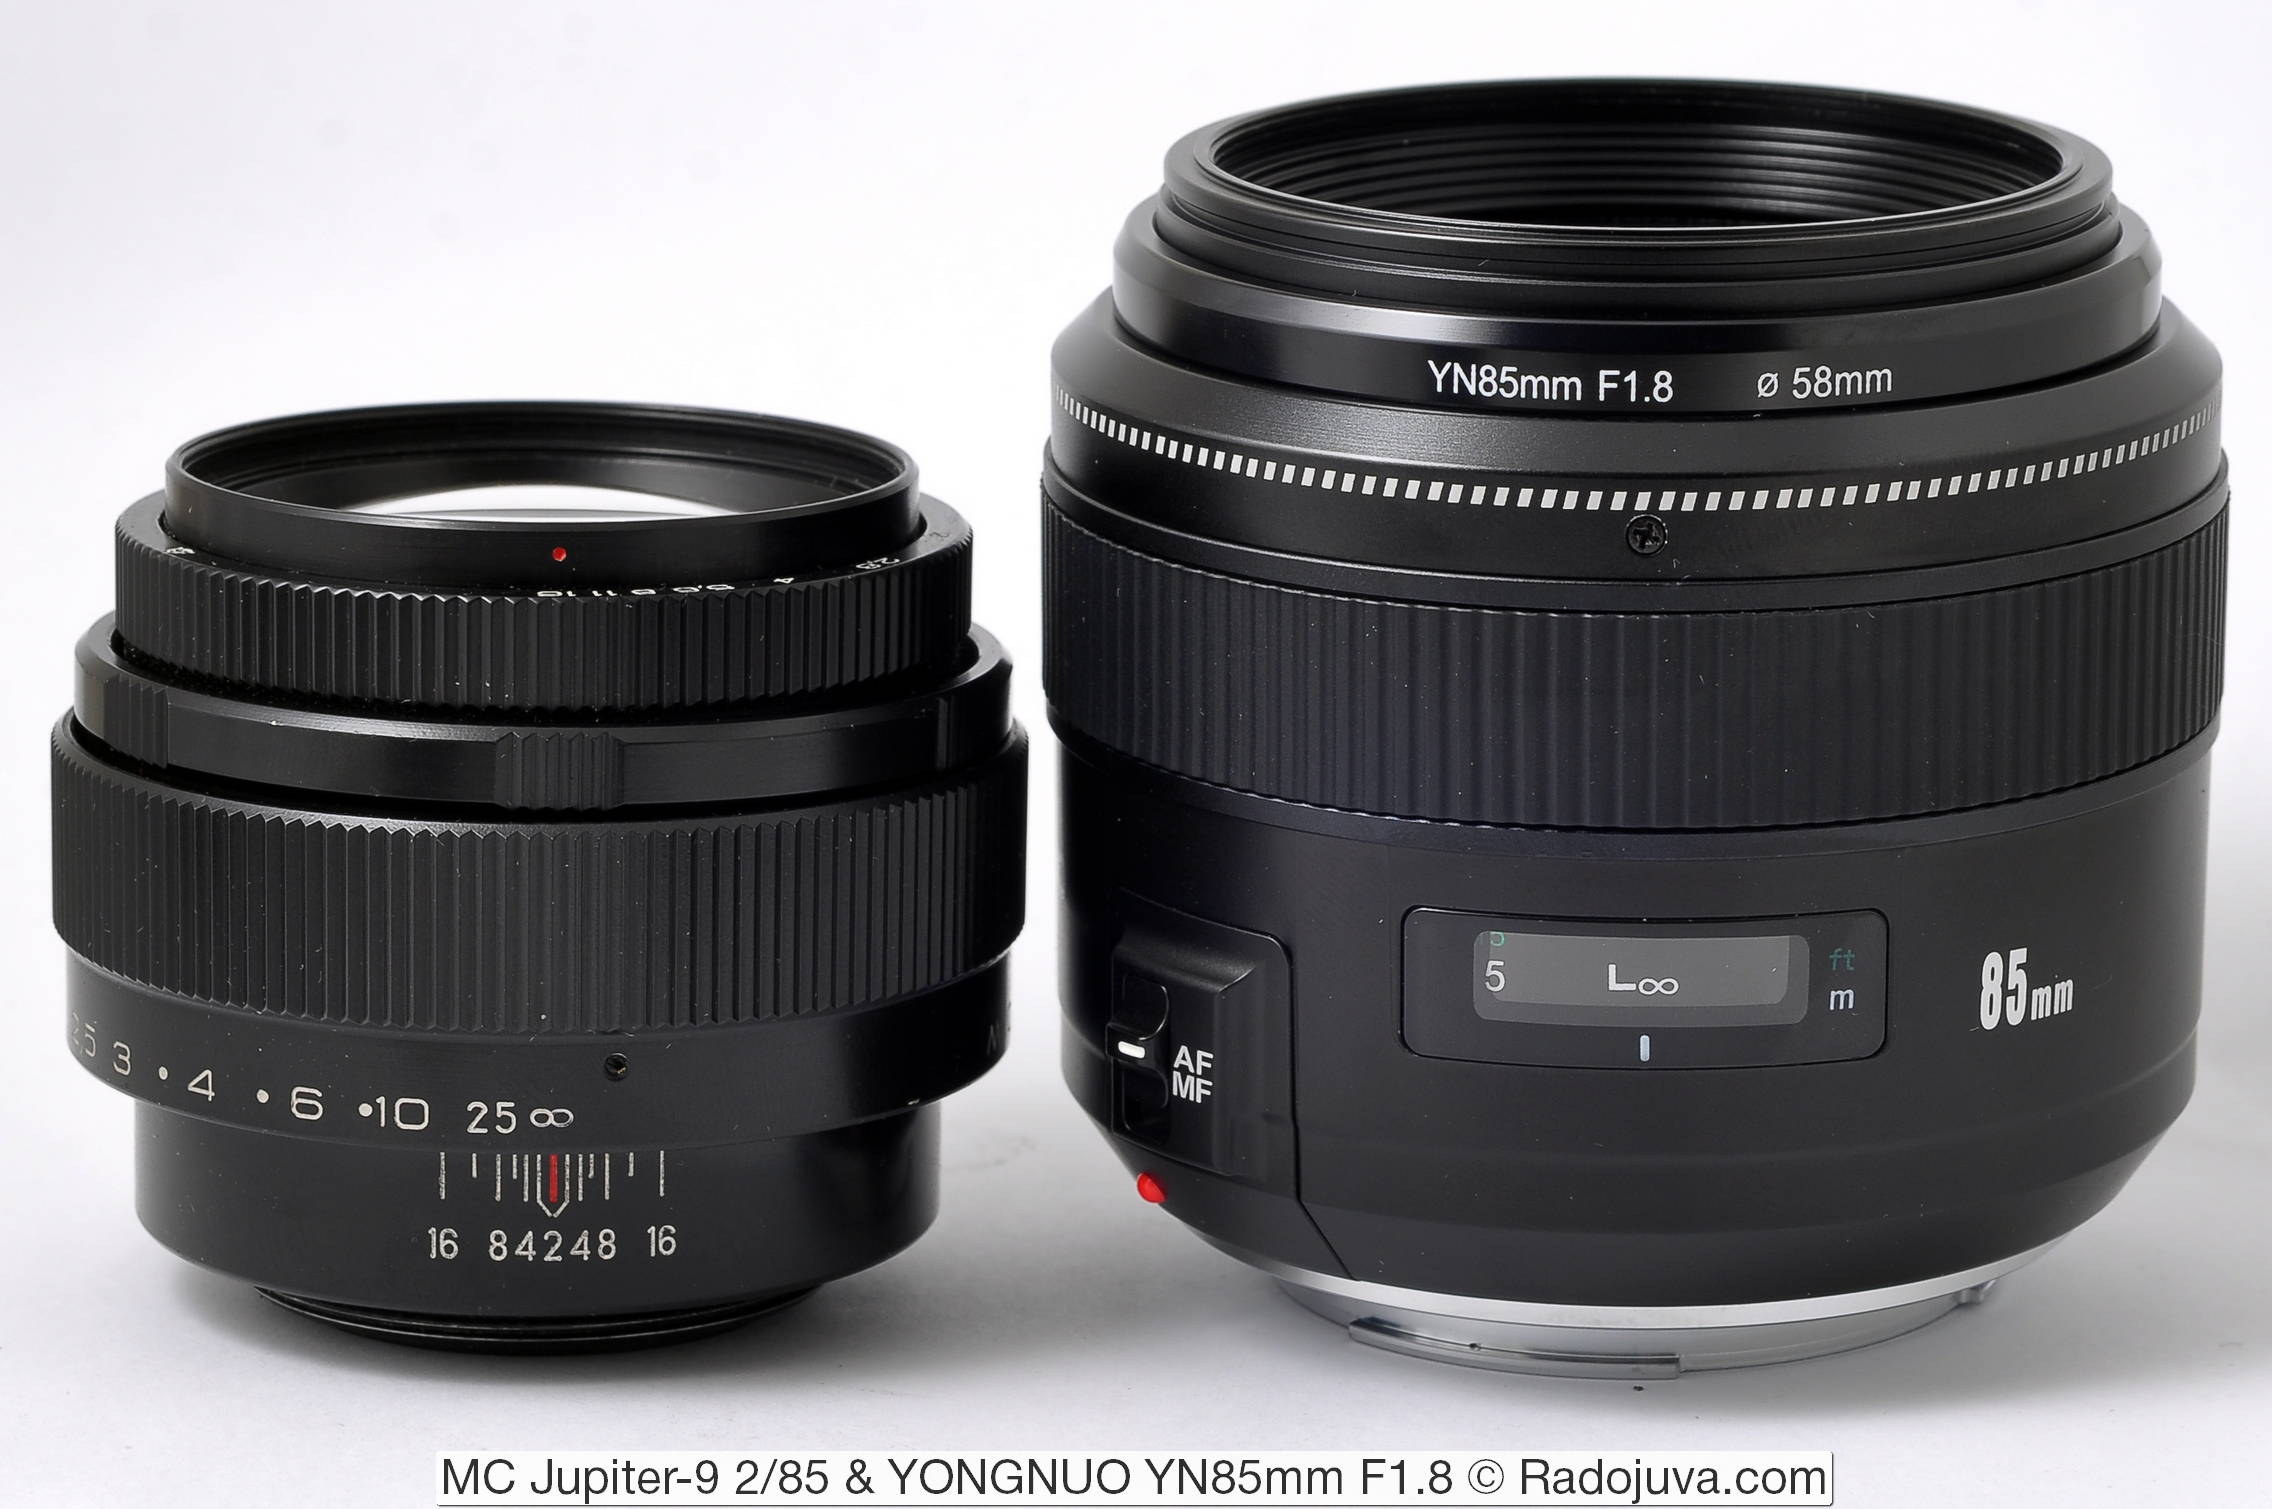 MC Jupiter-9 2/85 and YONGNUO YN85mm F1.8 (for Canon EF)